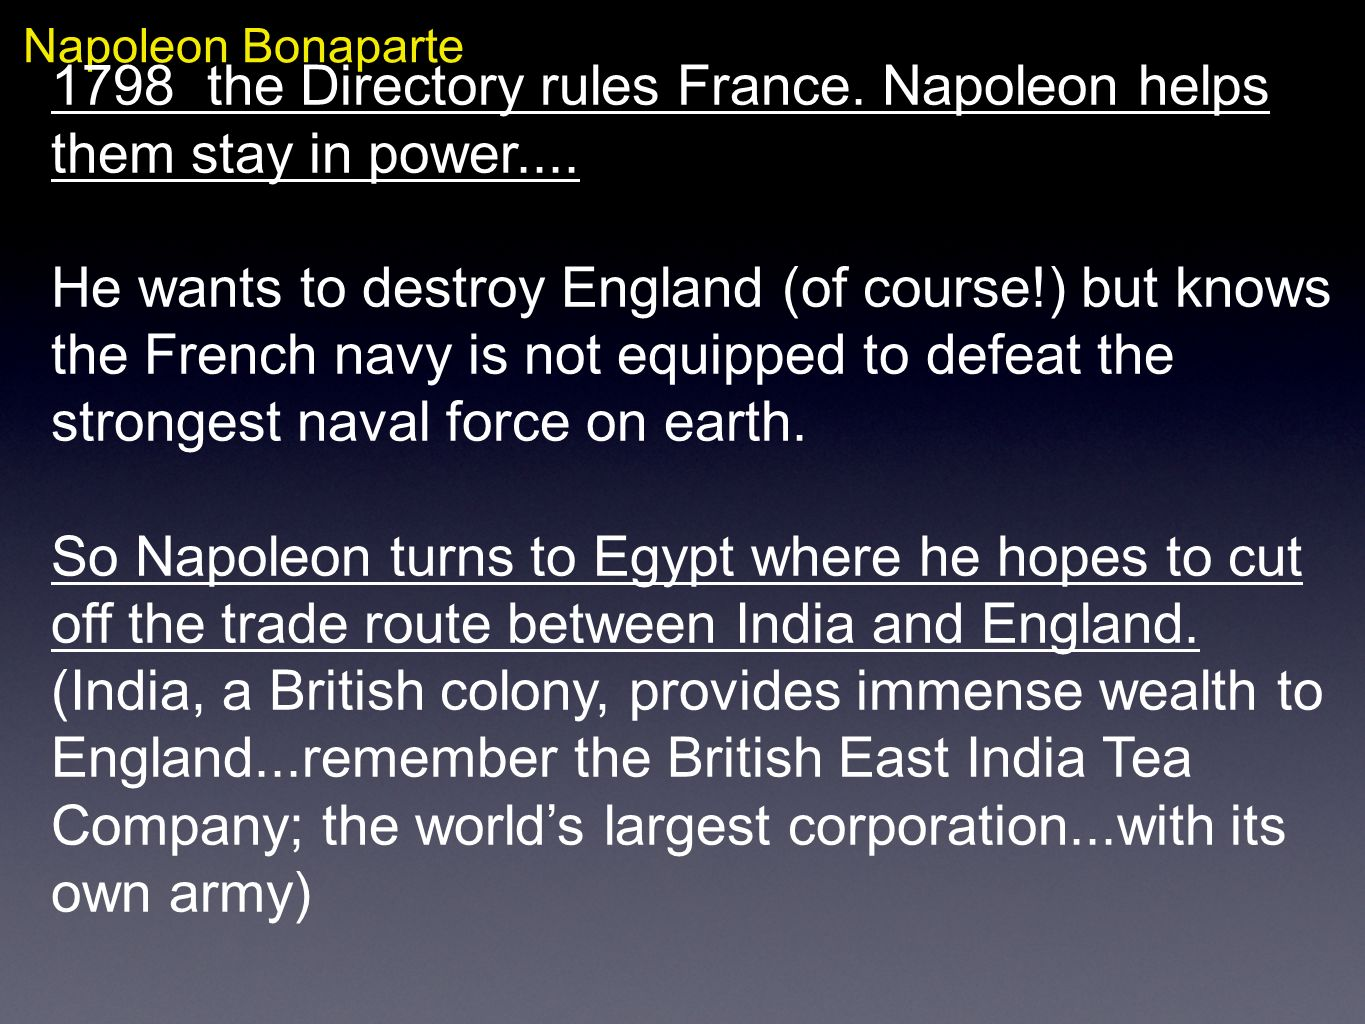 1798 the Directory rules France. Napoleon helps them stay in power....